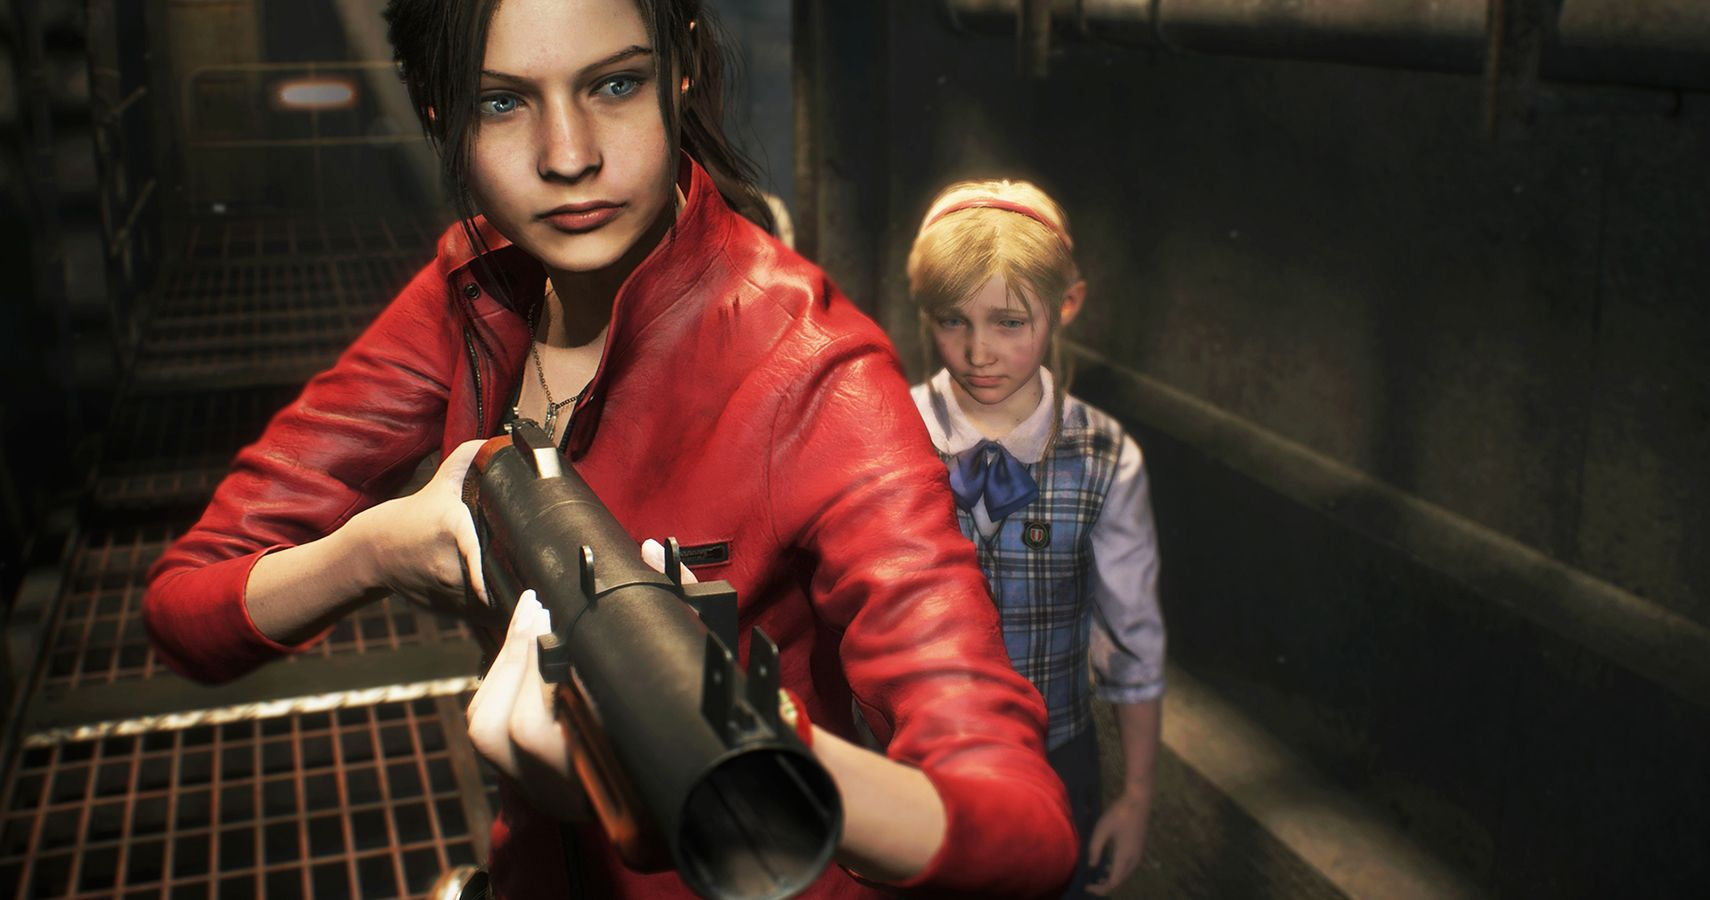 Rumor Claire Likely To Return In Next Resident Evil Game